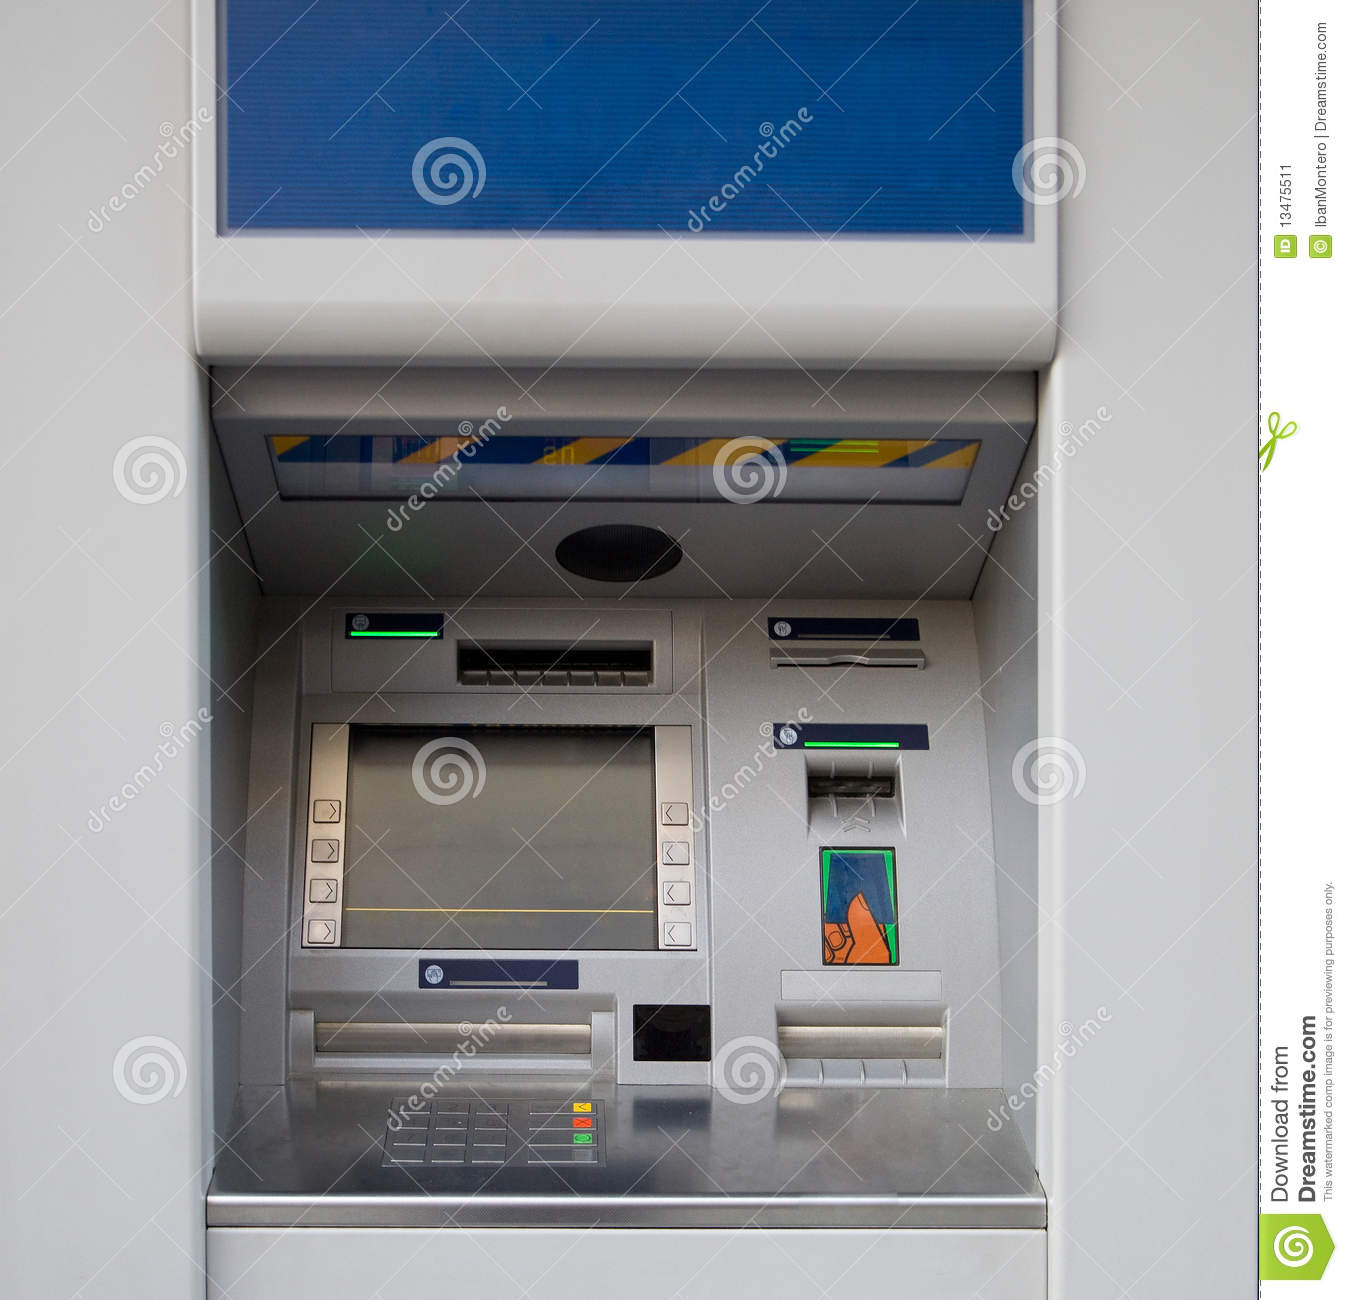 ATM and Branch Locations - Store Locator